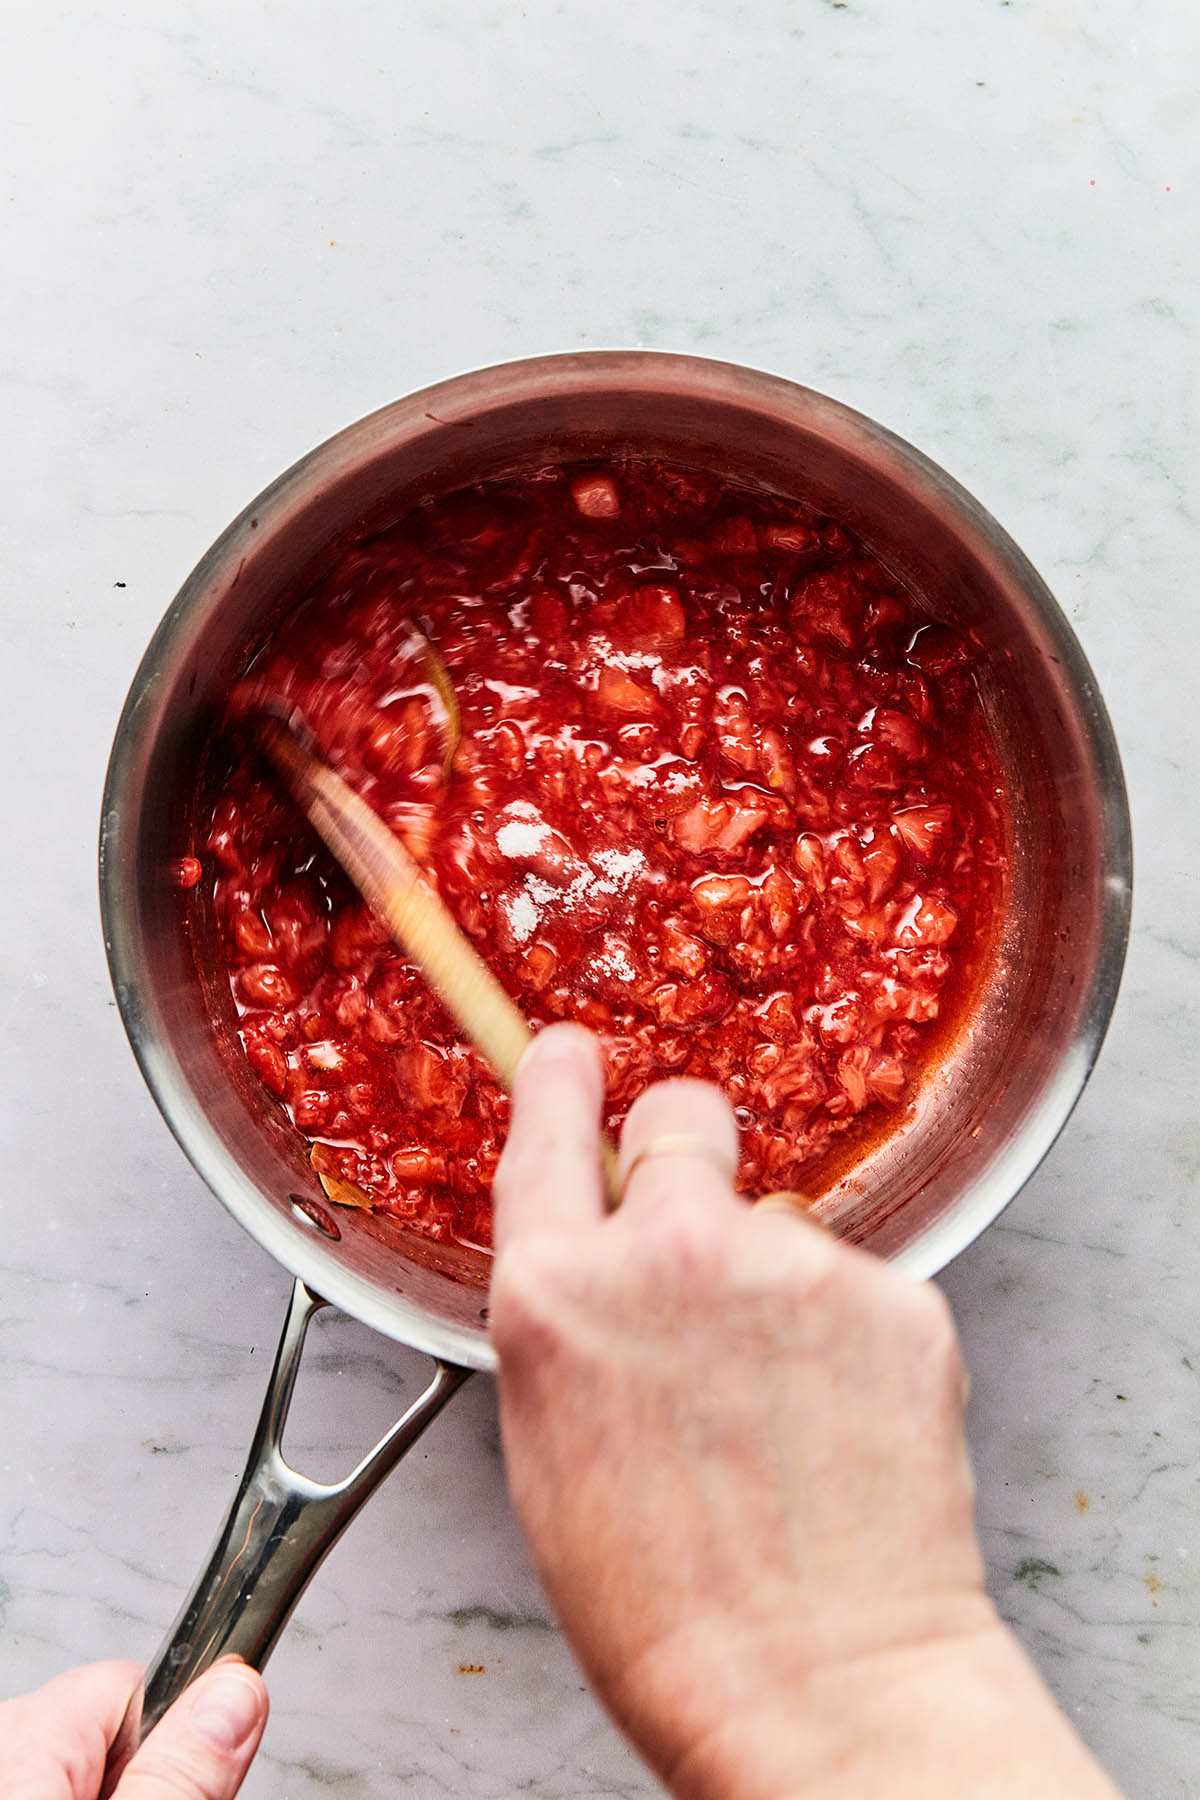 A hand using a wooden spoon to quickly stir sugar and pectin into a pot of cooked strawberries.